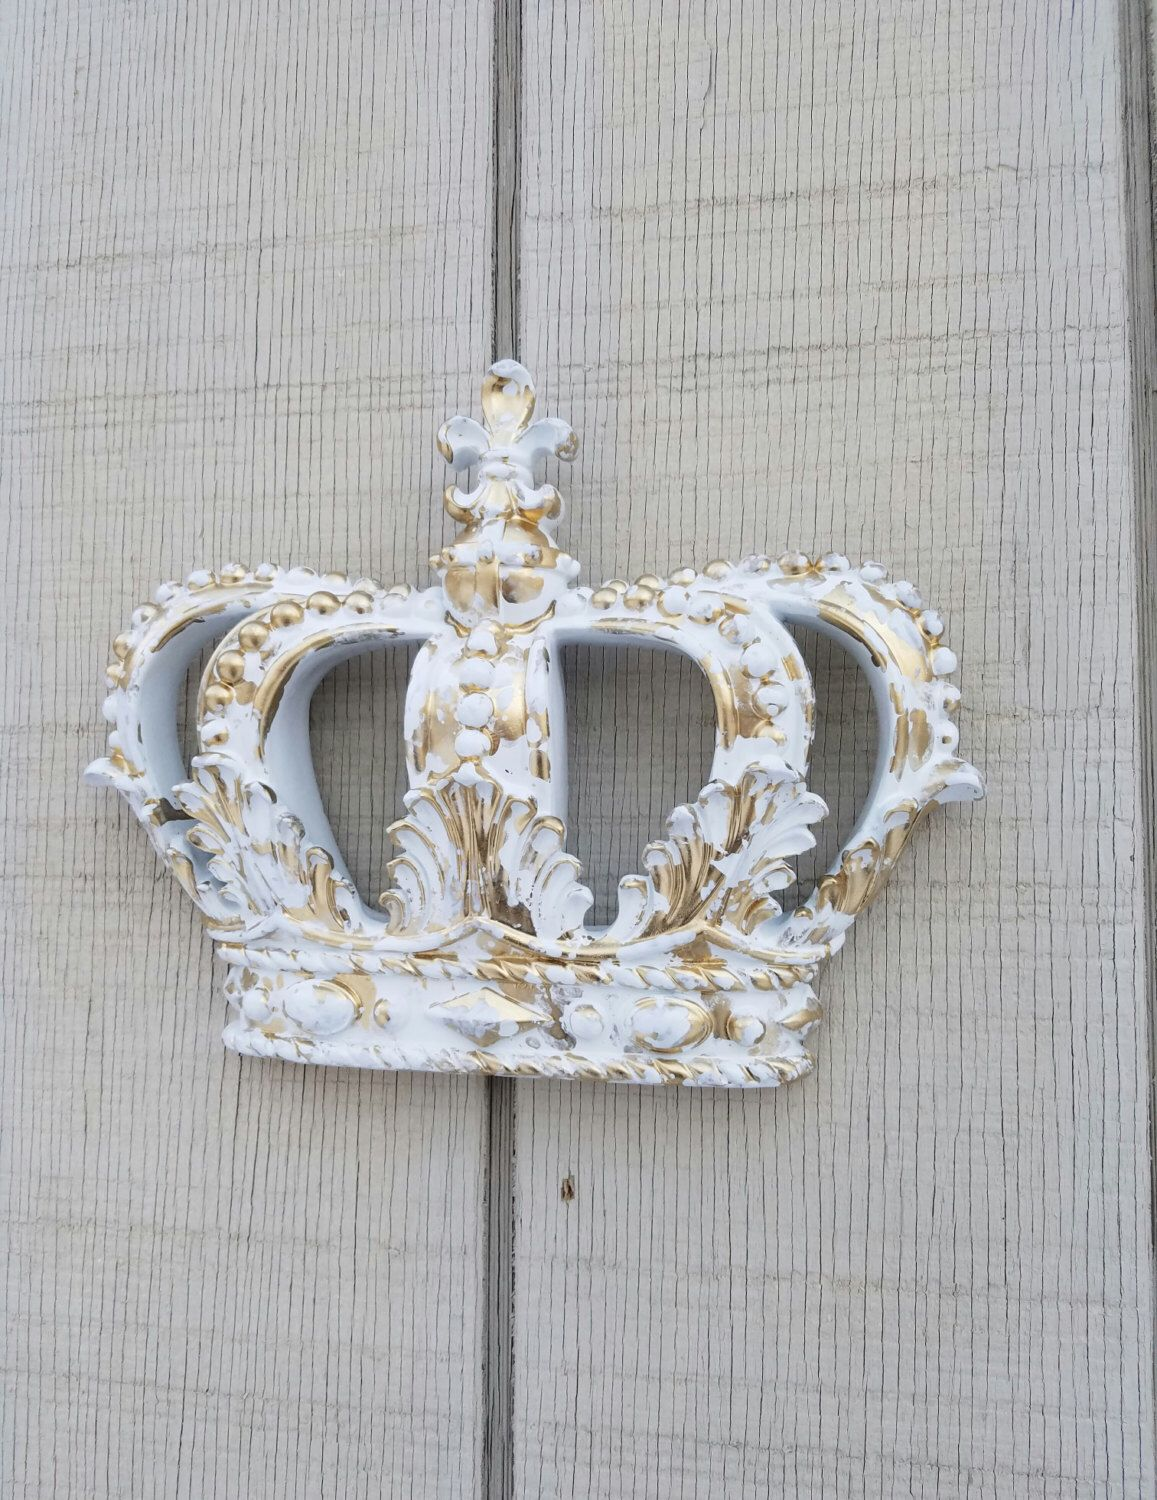 Gold Crown Wall Decor Nursery Wall Decor Crib Crown Canopy Wall Decor  Ornate Crown Gold Fleur Part 45